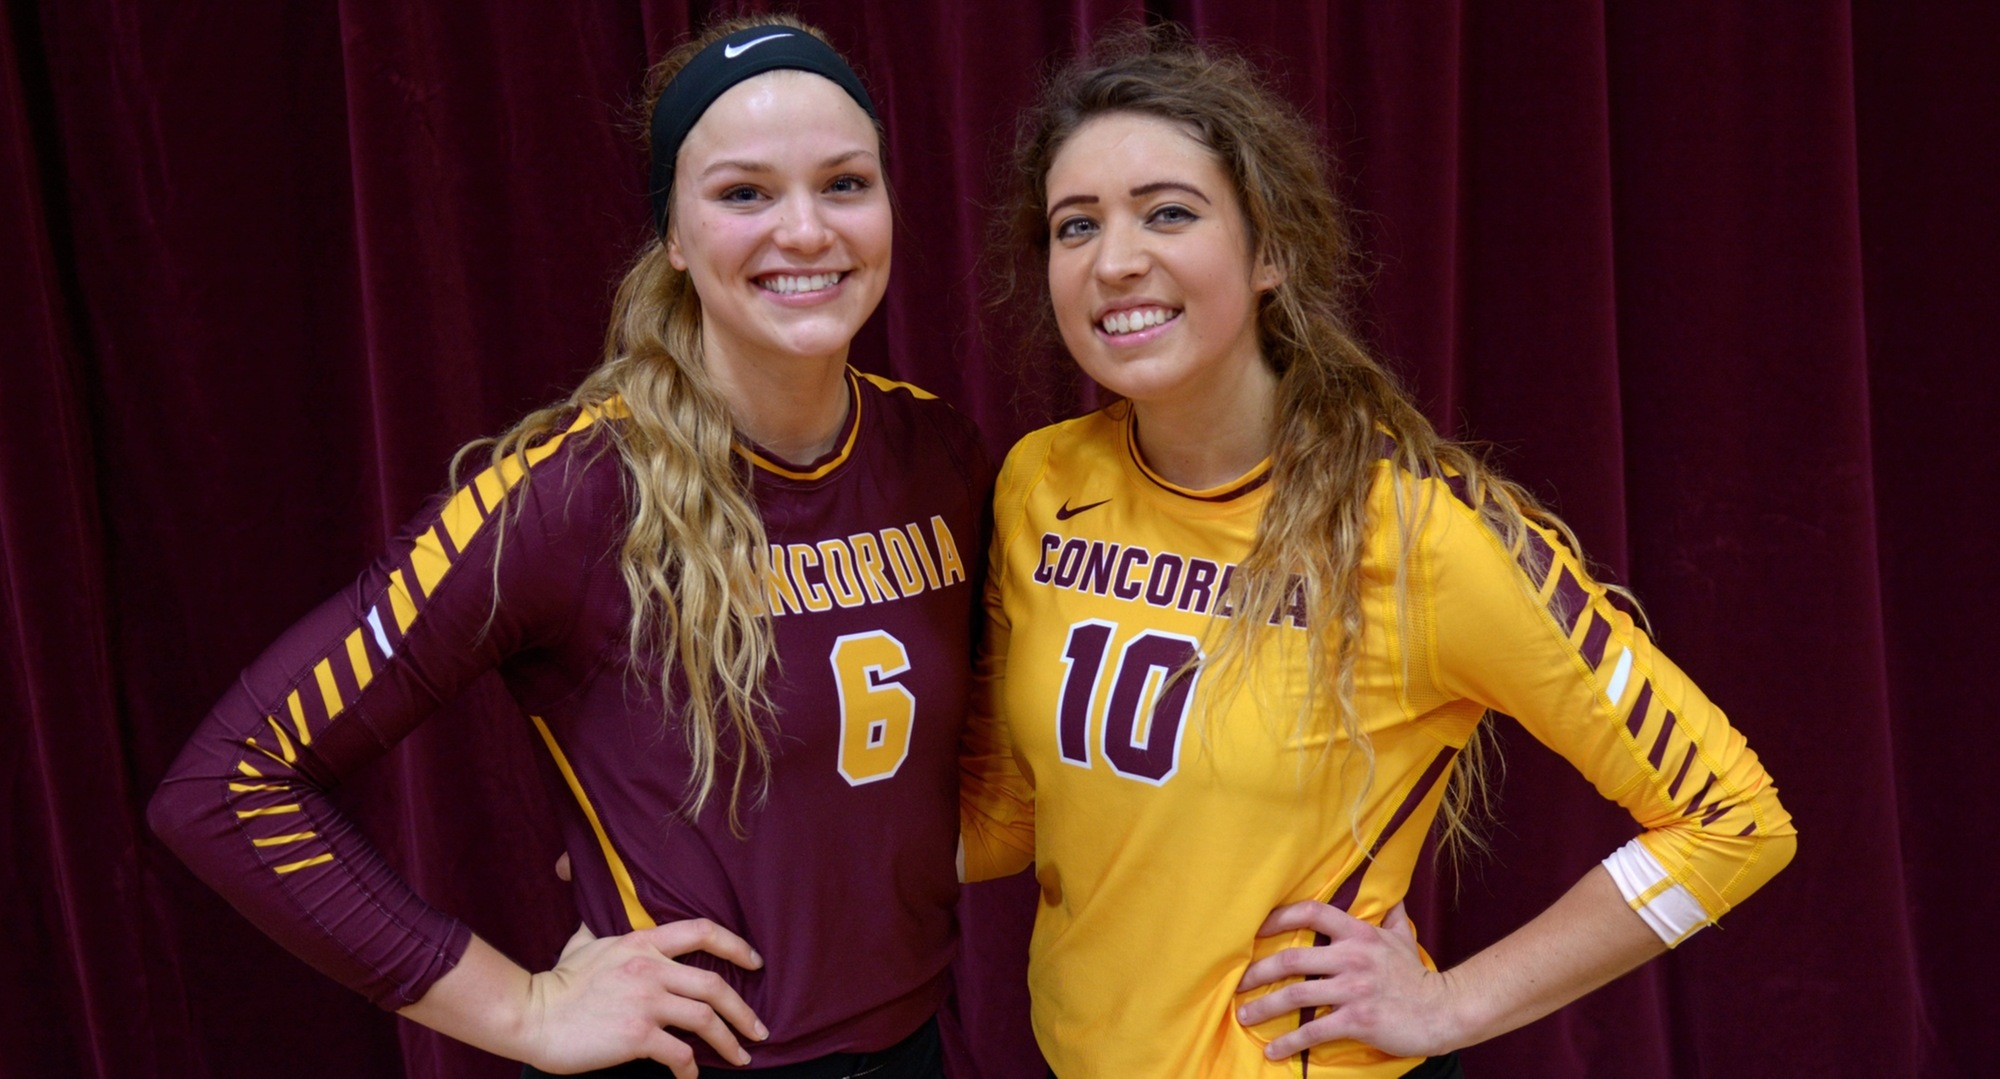 Cobber outgoing players Emily Friedrich (L) and Stephanie Baker were honored befor the Cobbers' upset win over #11 Gustavus.